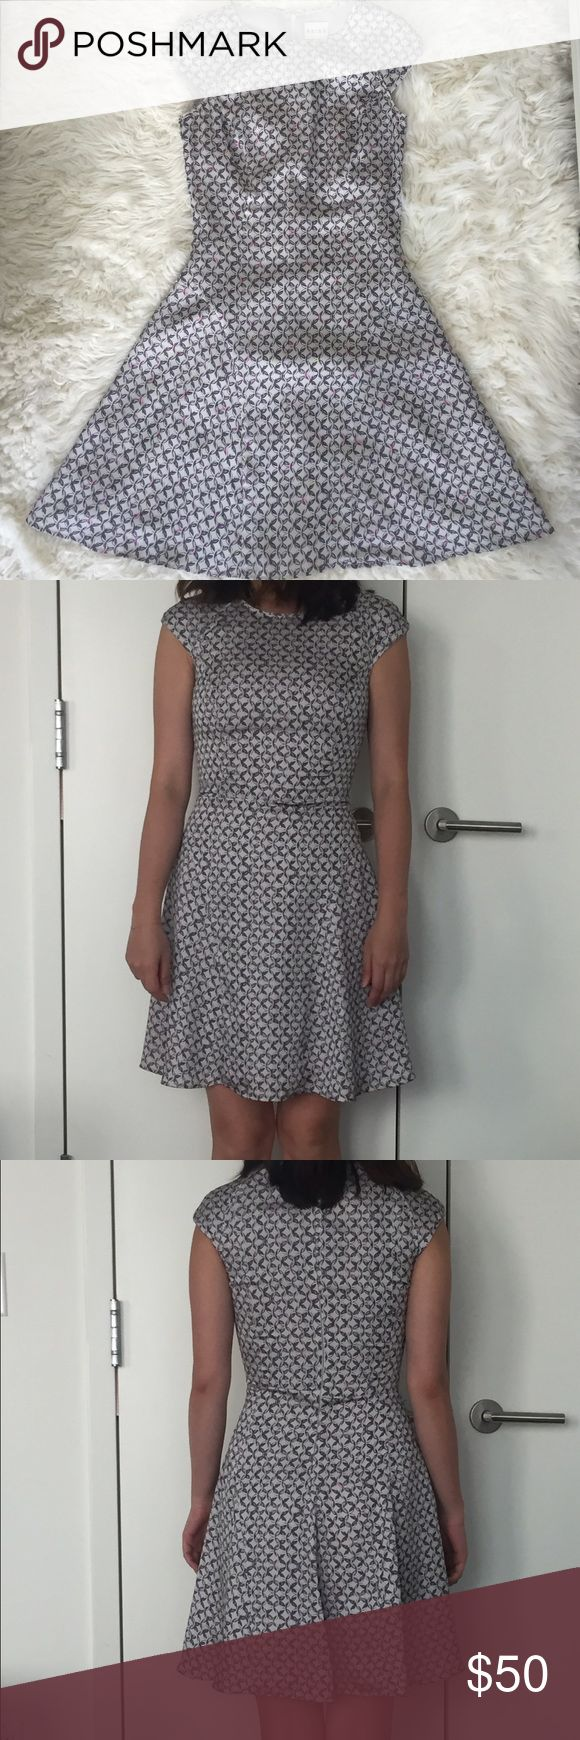 """New Reiss printed A-lined dress size 2 Elegant and classic Reiss printed dress in US size 2. It is great for work and date. I'm 5""""5 and 125 lbs. Bust 25"""". Waist 27"""". Bottom 35"""". I love this dress but it is a bit too small on me. It will look good on someone who is a bit smaller than me. Reiss Dresses Midi"""